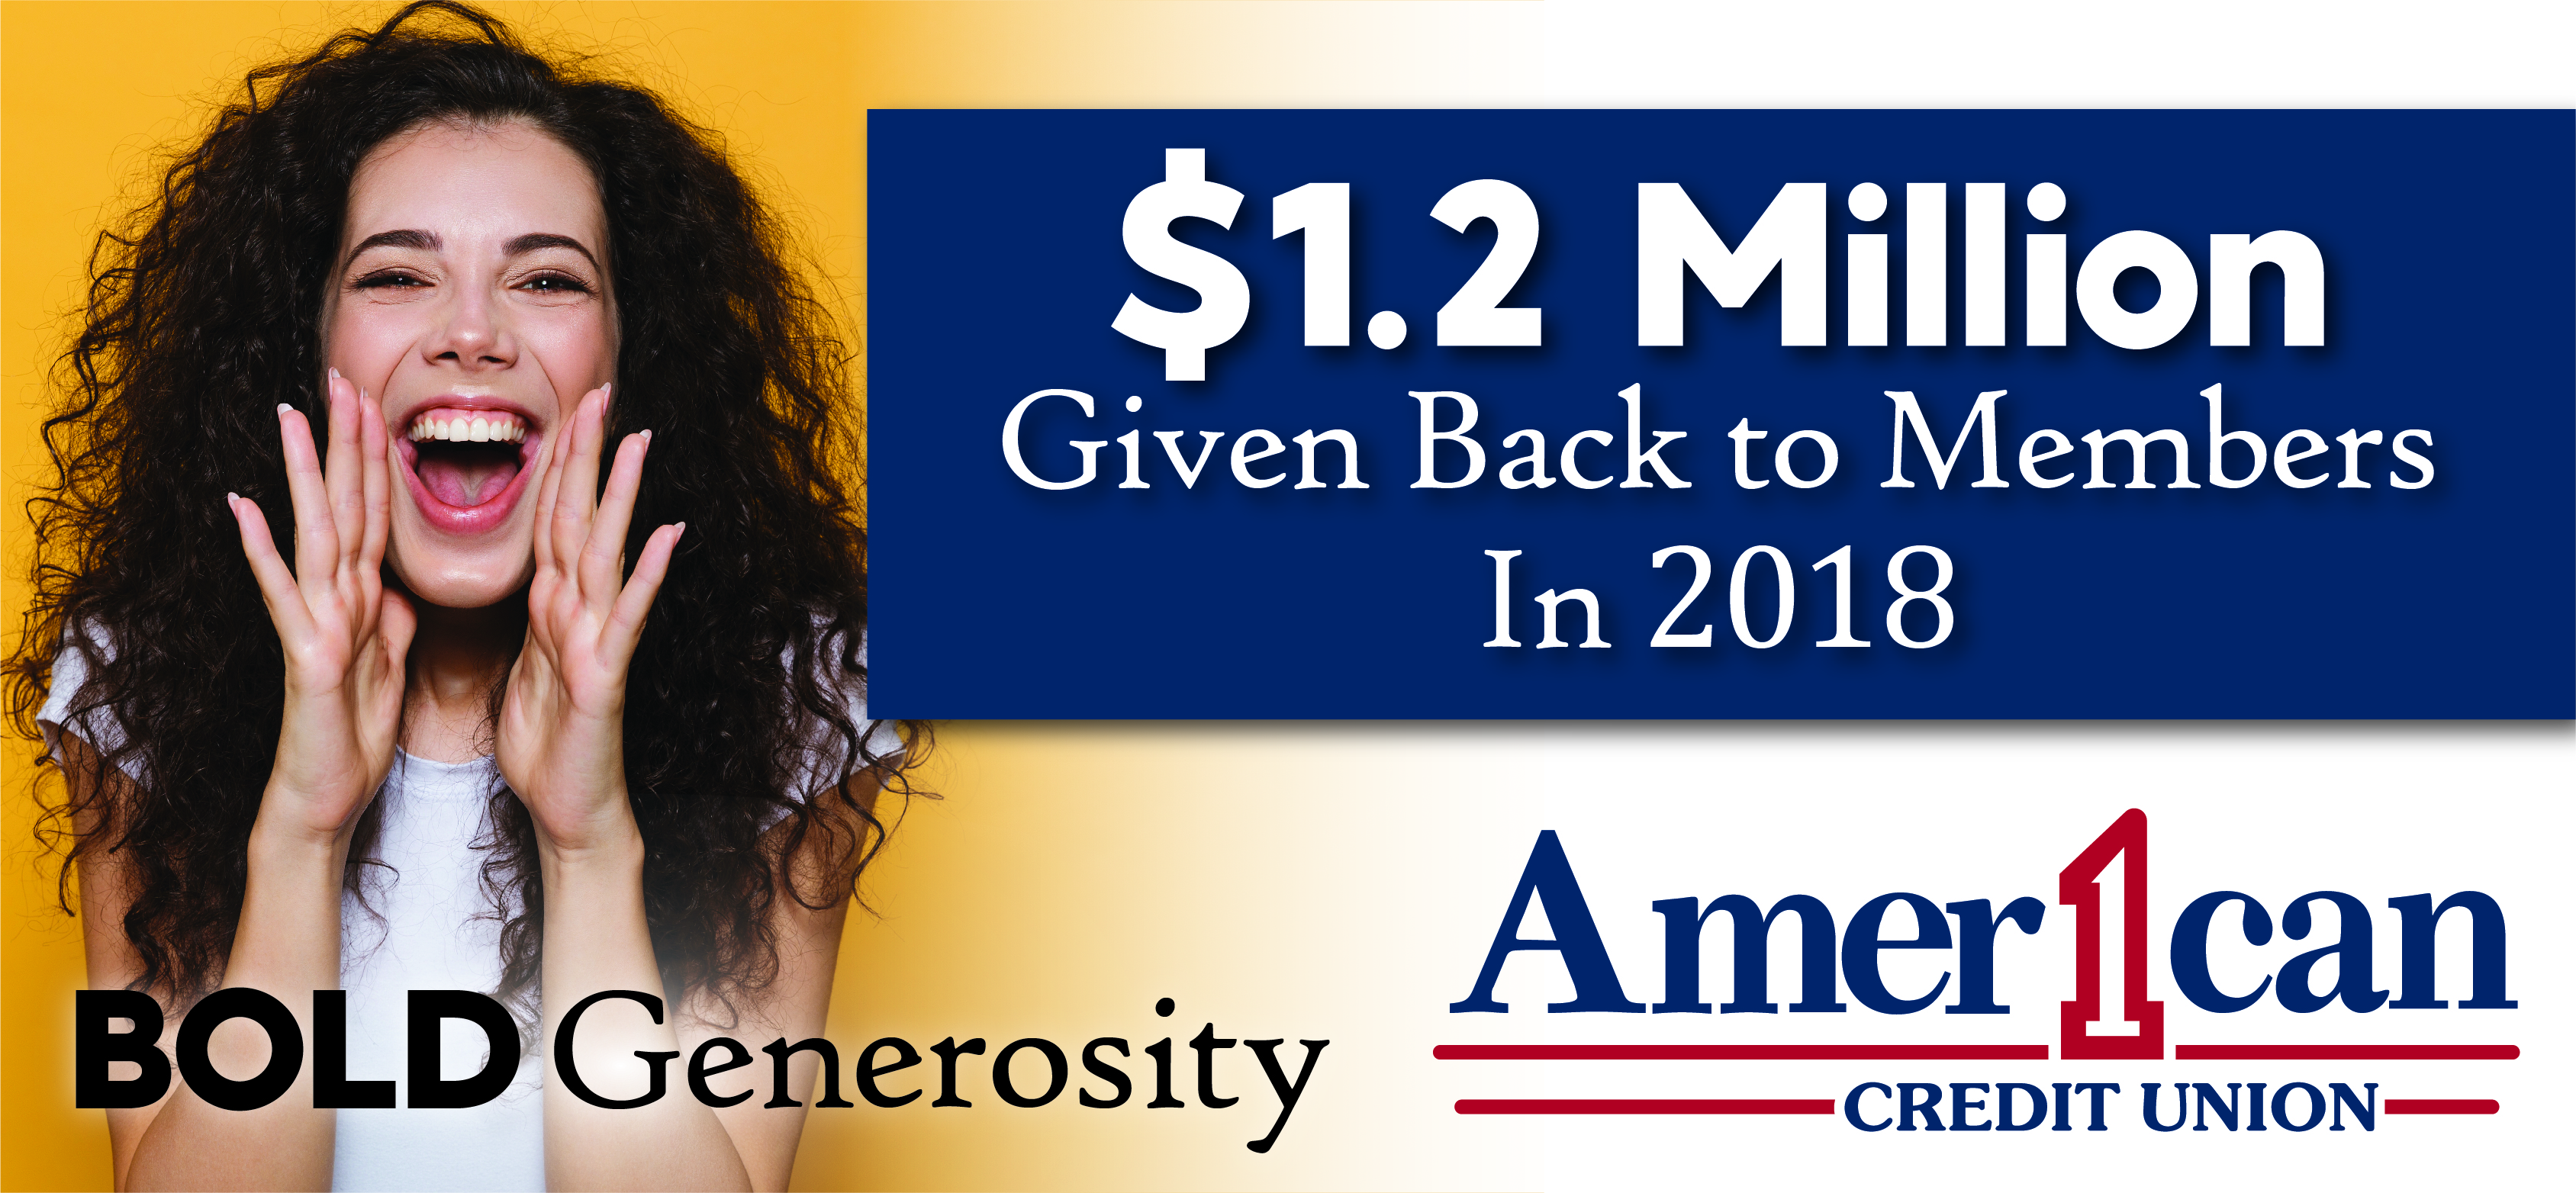 American 1 gives back $1.2 million dollars to members in 2018!